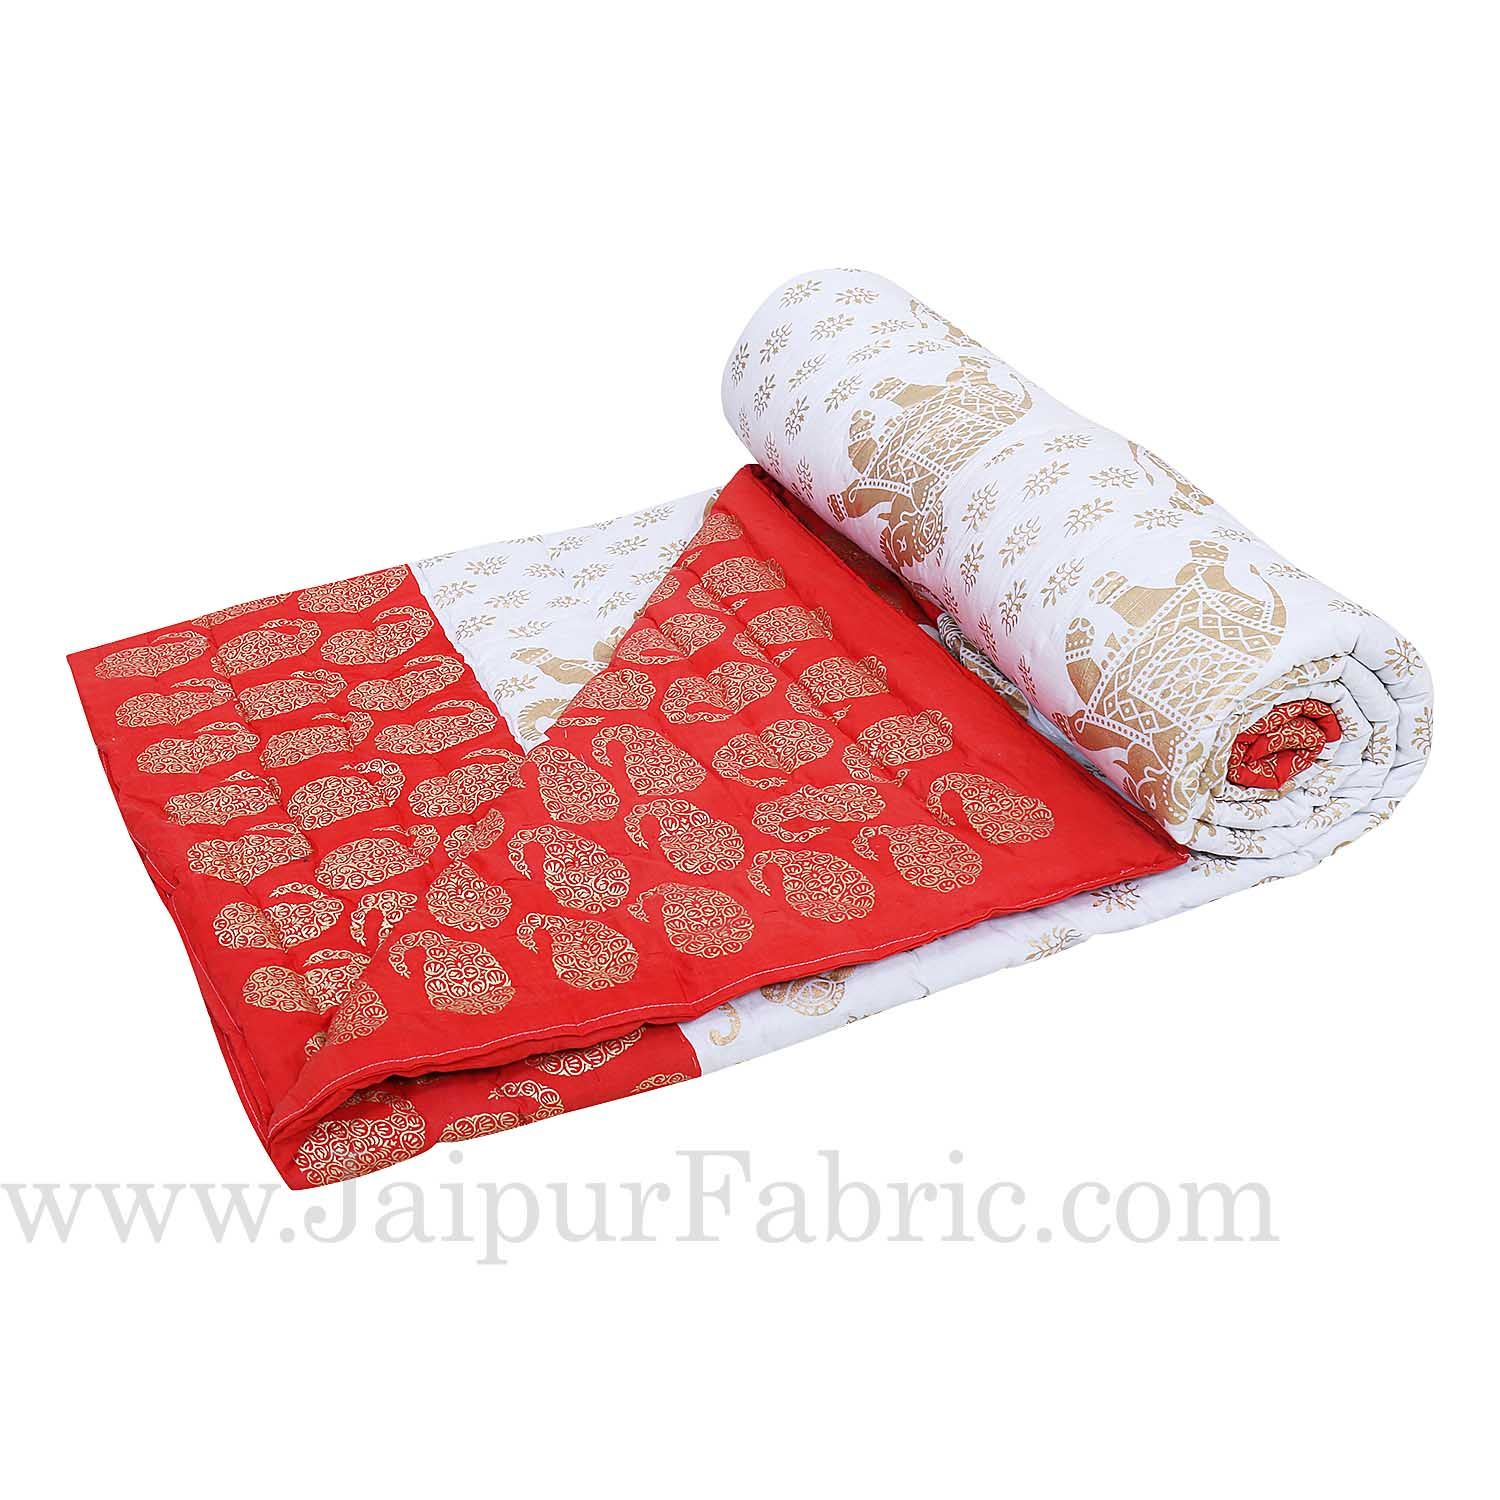 Red Border  Cream Base  With Golden Print Elephant Print Super Fine Cotton Voile(Mulmul) Both Side Printed Cotton Double Bed Quilt